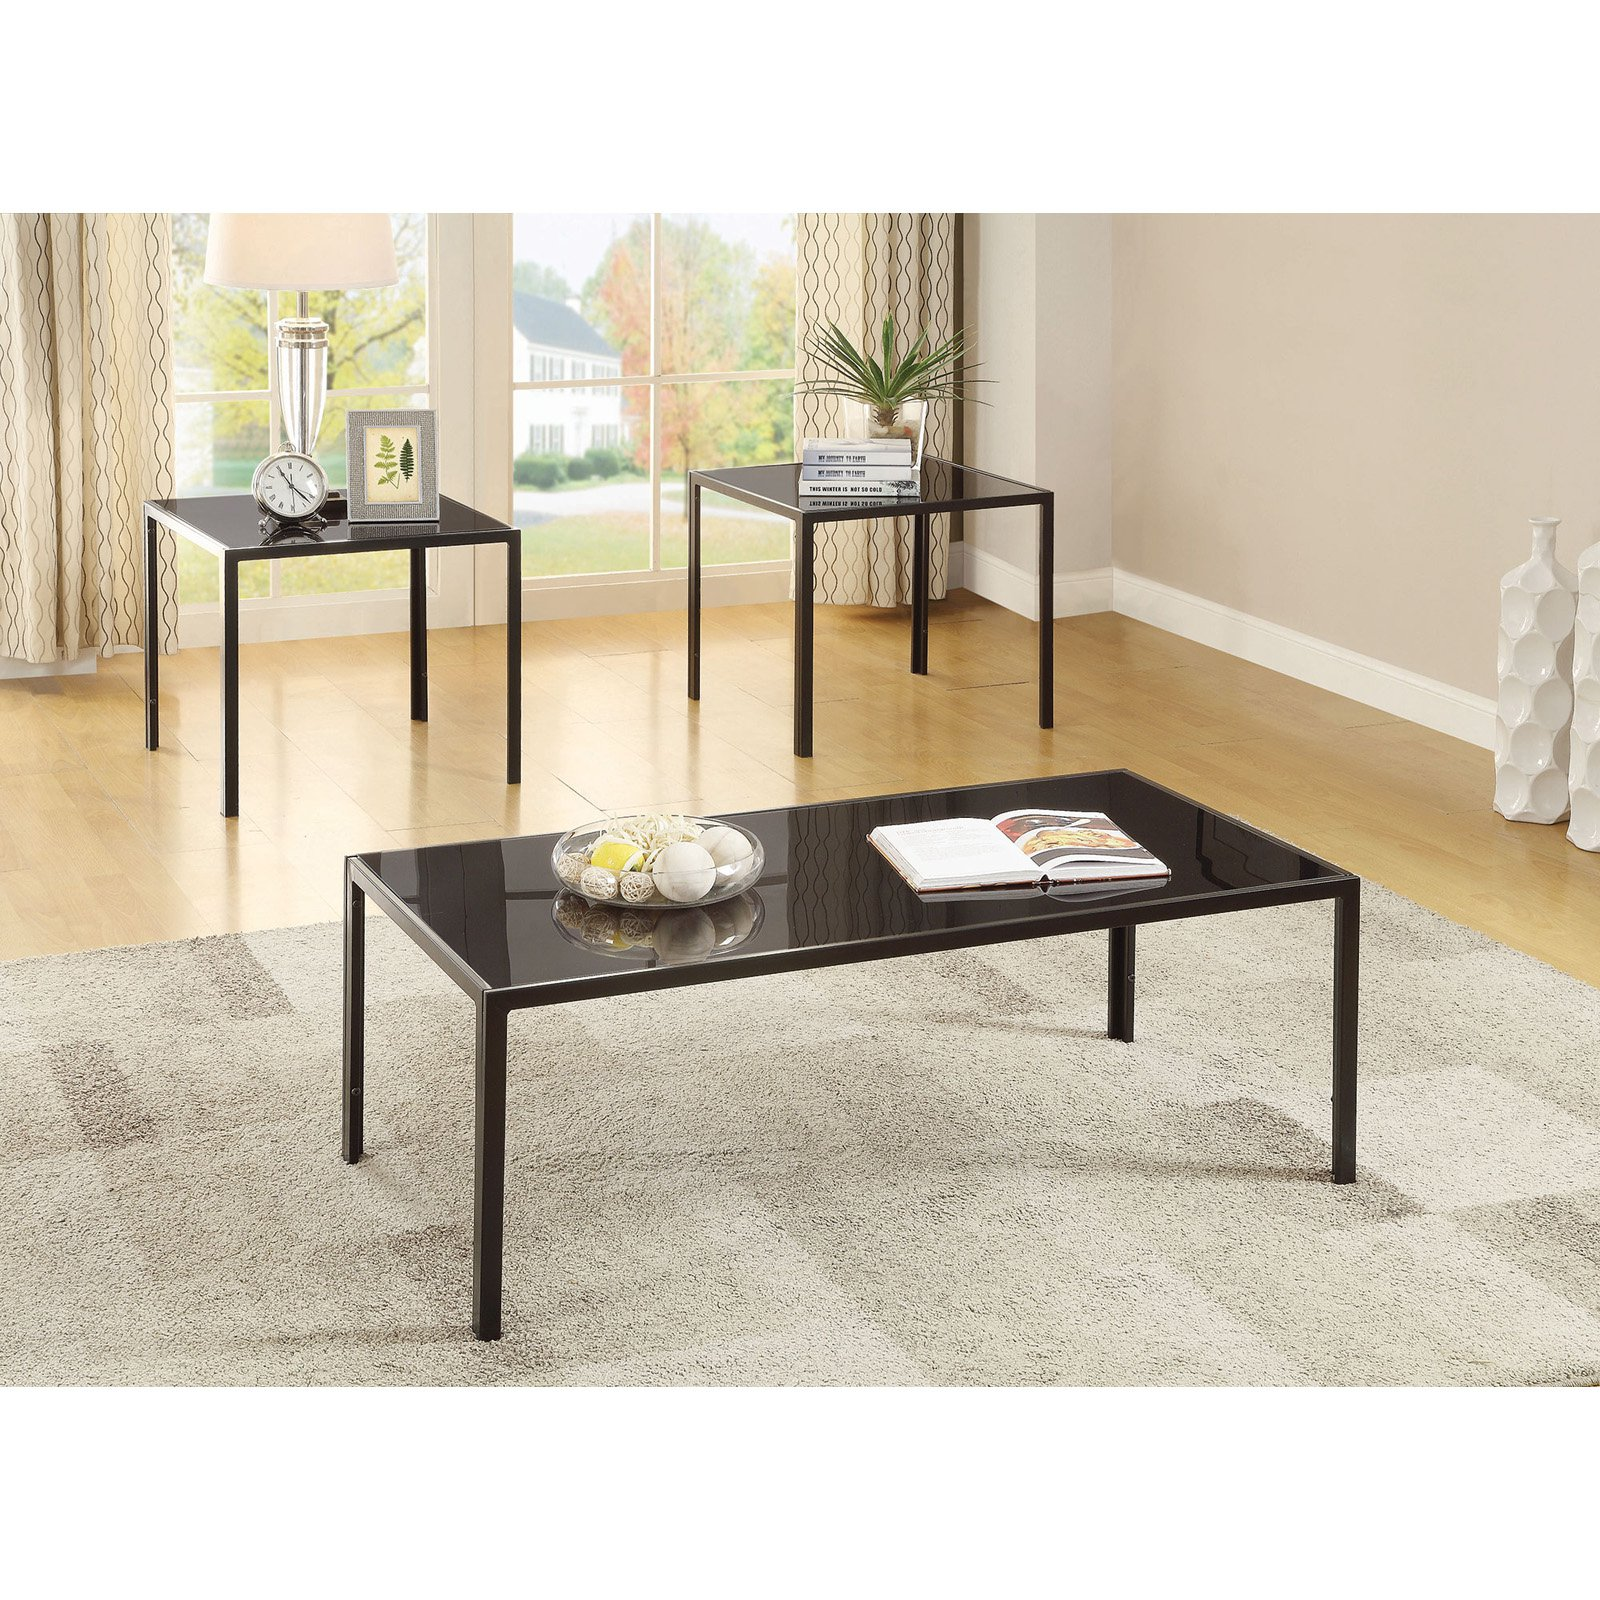 Coaster Company 3-Piece Occasional Table Set, Antique Pewter